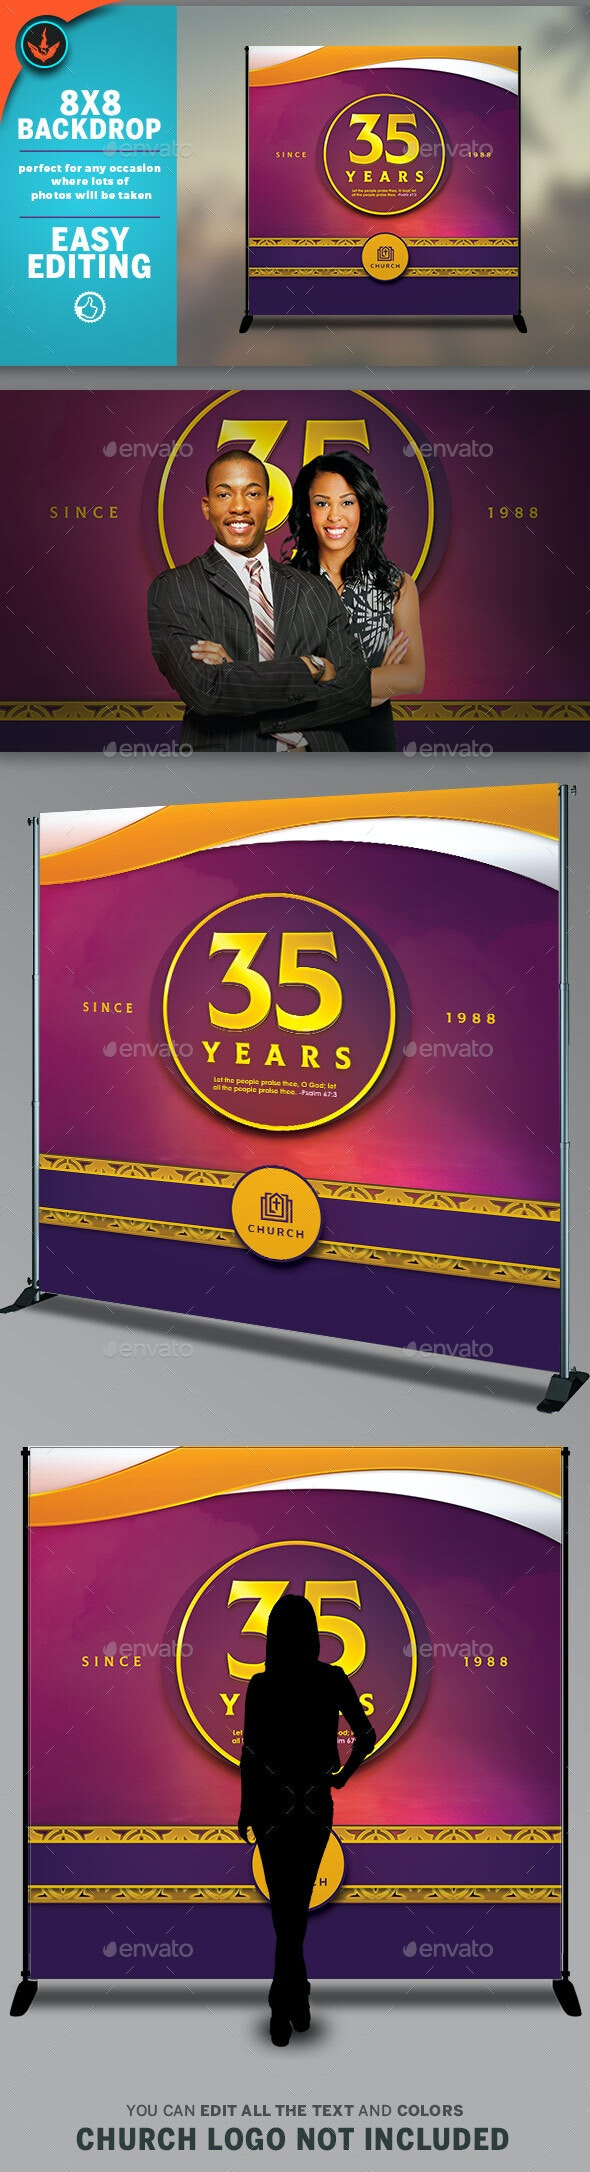 Church Anniversary Printable Backdrop Banner Template - Signage Print Templates